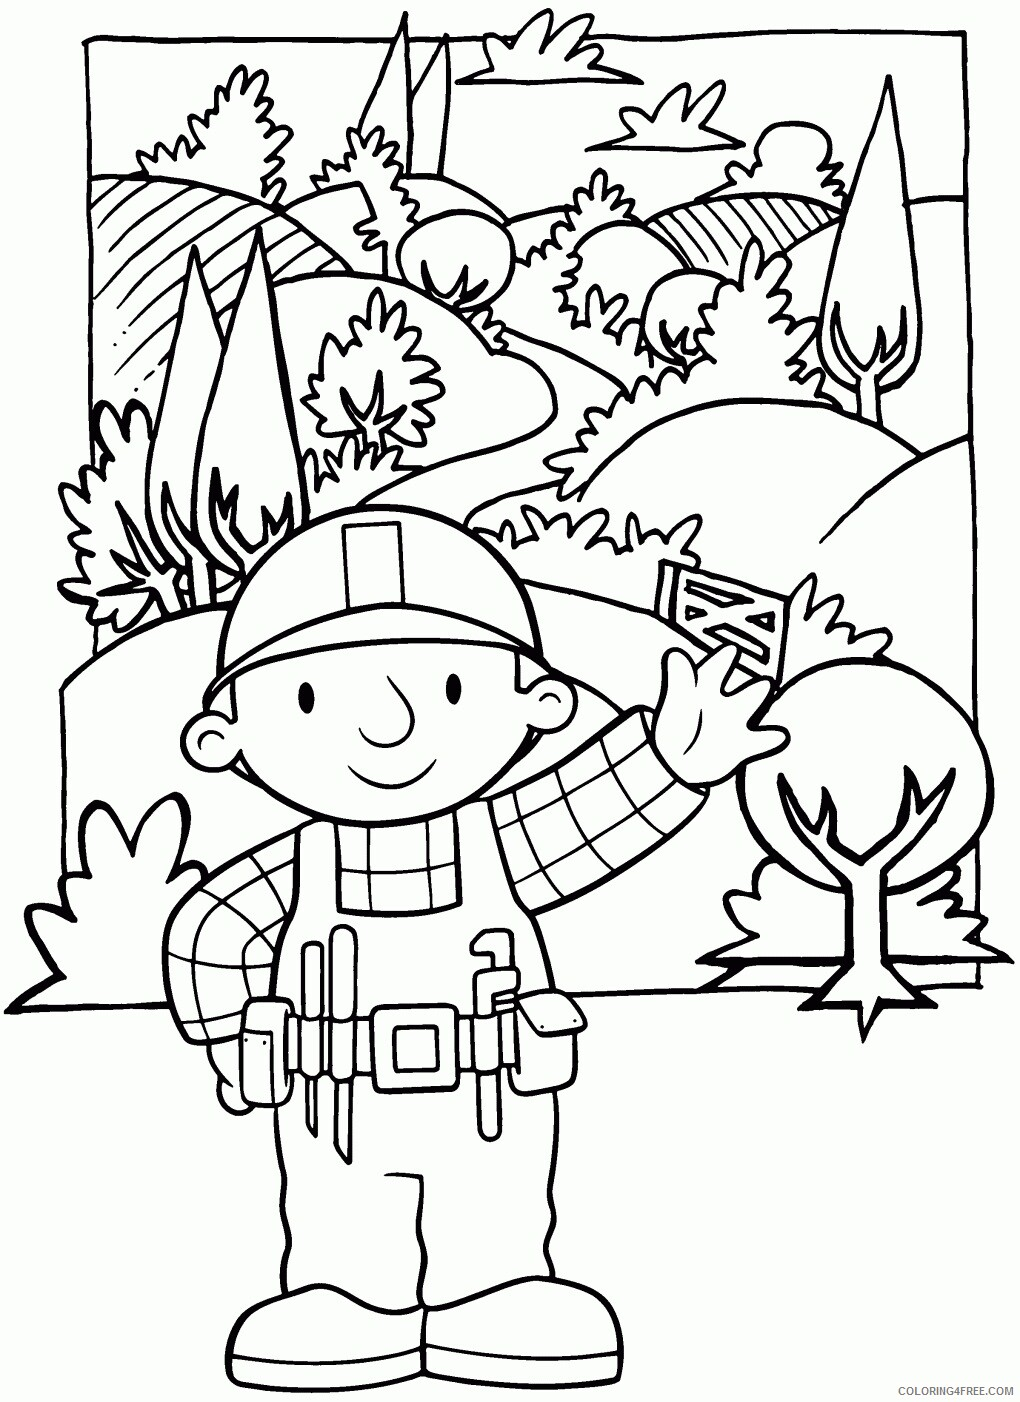 Bob the Builder Coloring Pages TV Film Kids Bob The Builder Printable 2020 01142 Coloring4free